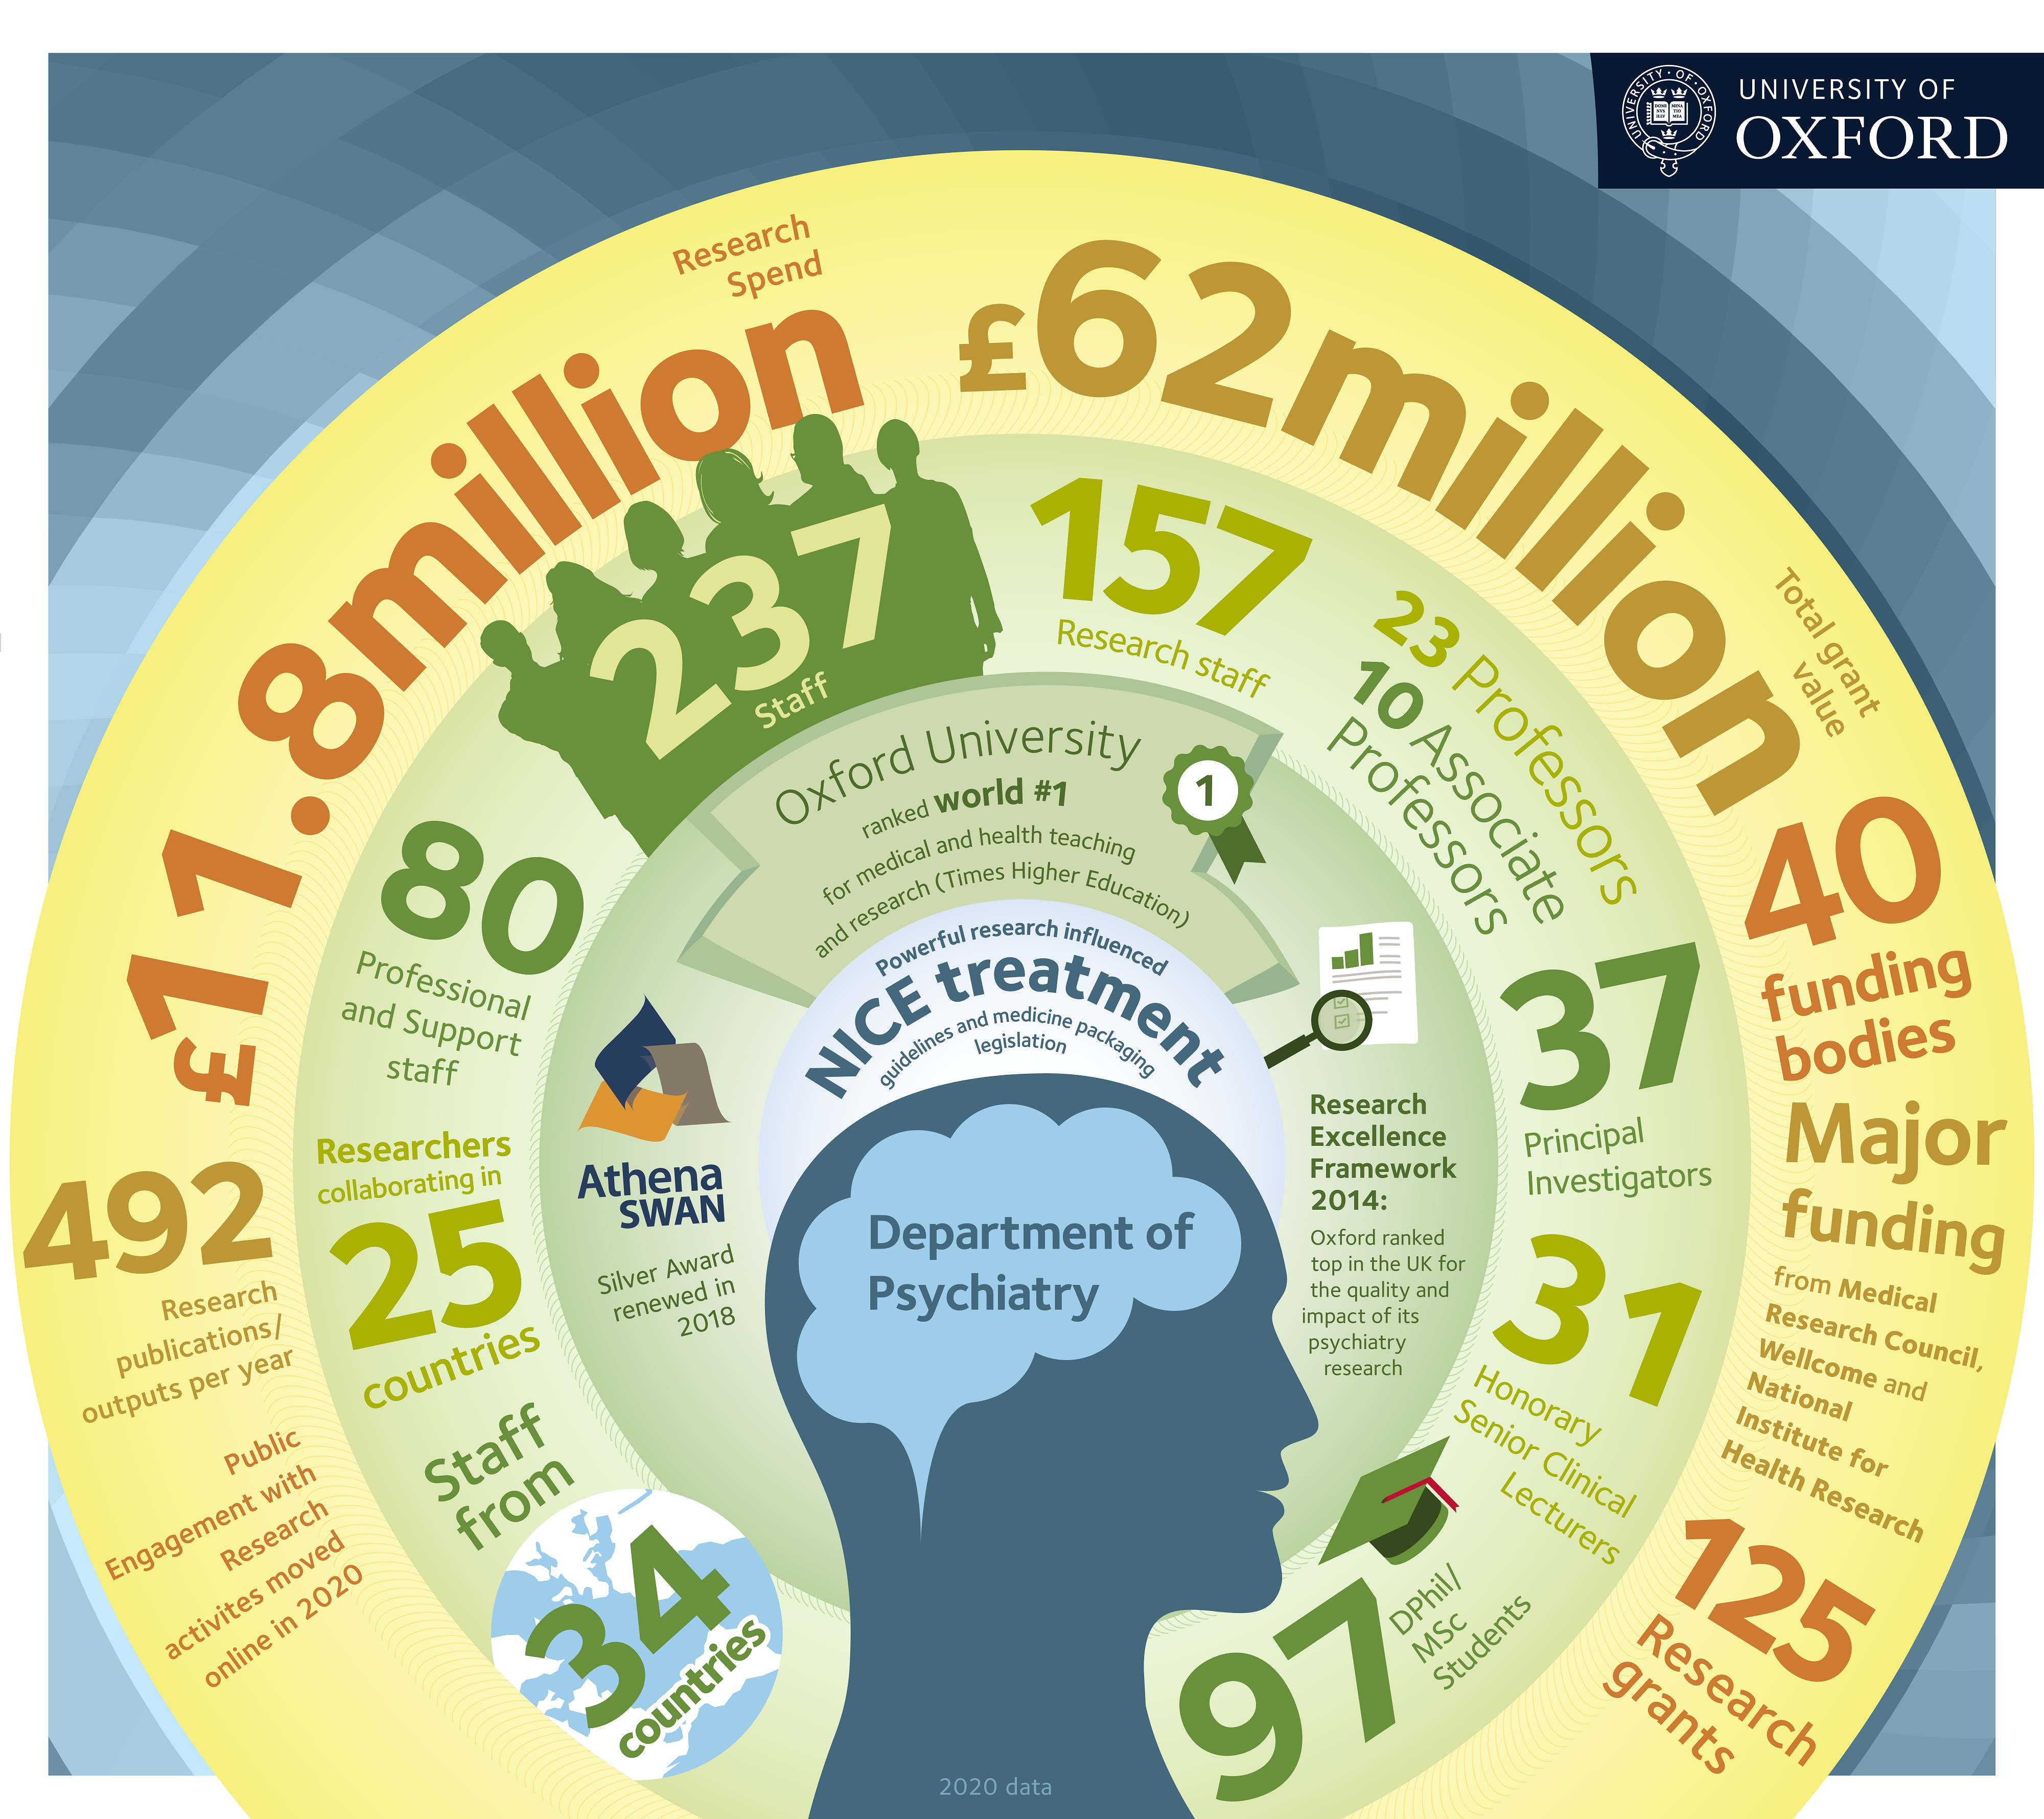 Infographic showing important facts and figures about the department.